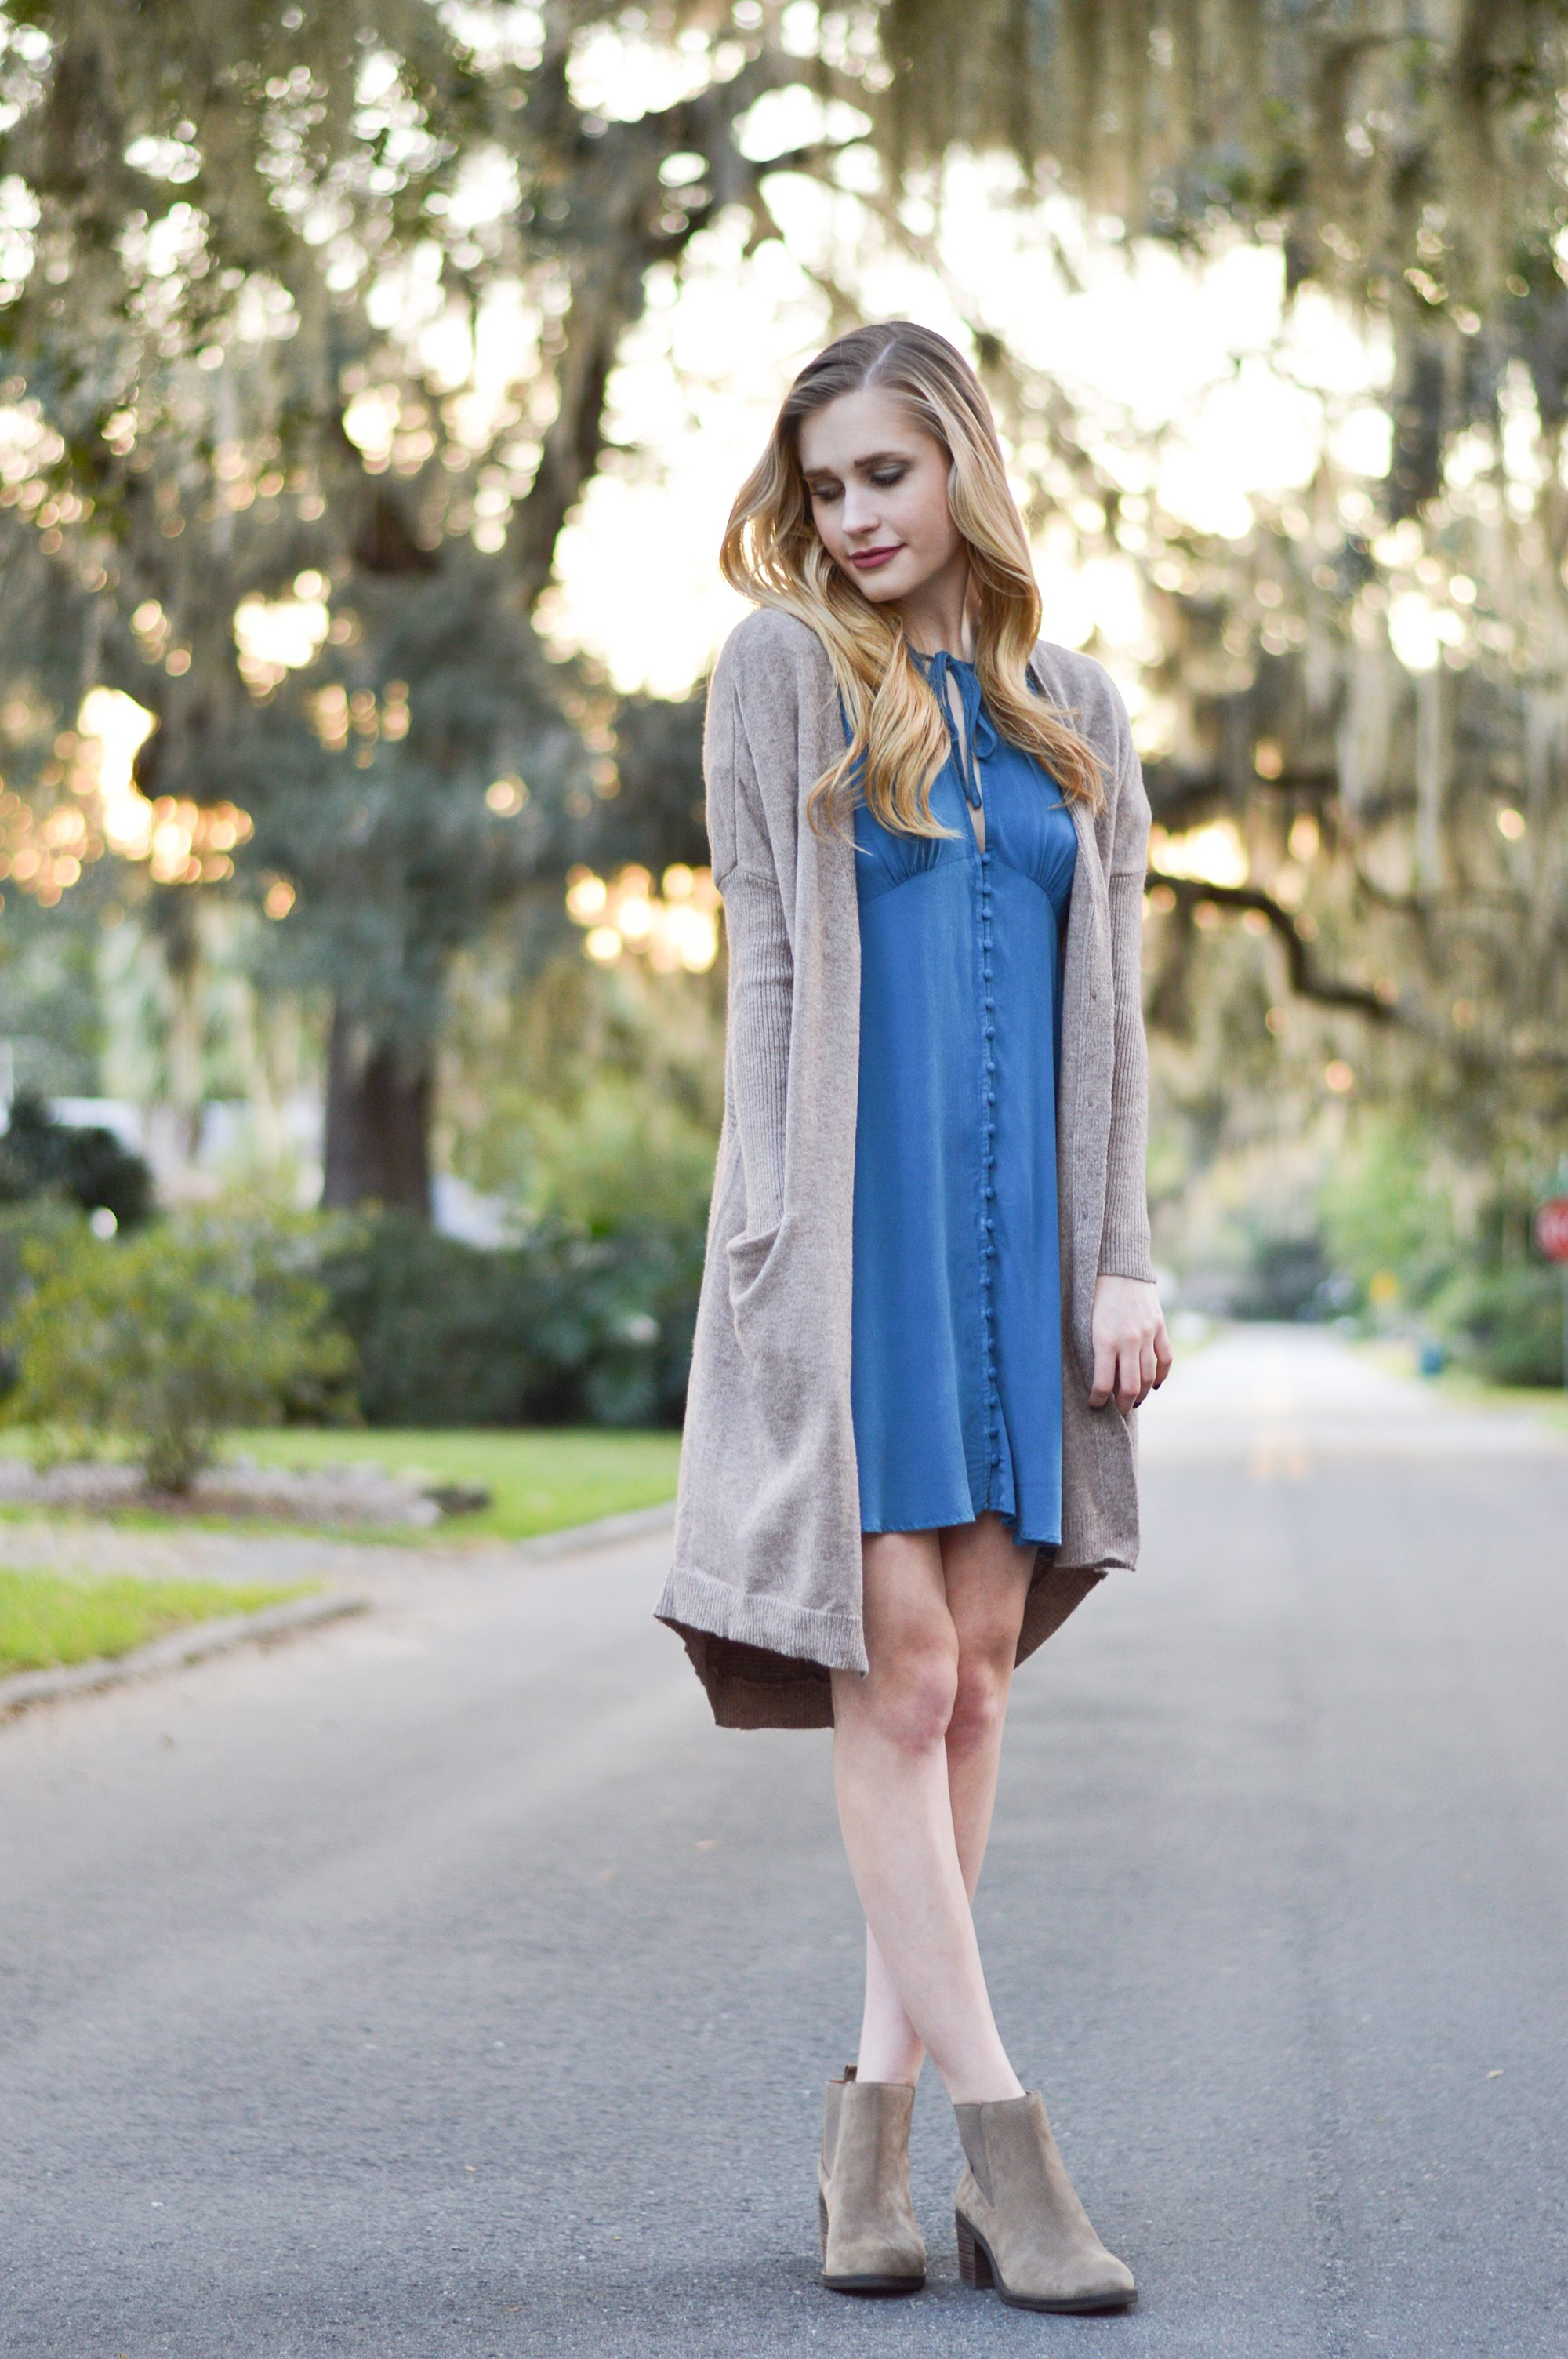 styelled-blog-sweater-weather-fall-70s-style-fashion-blogger-ootd-booties-dress-october-15